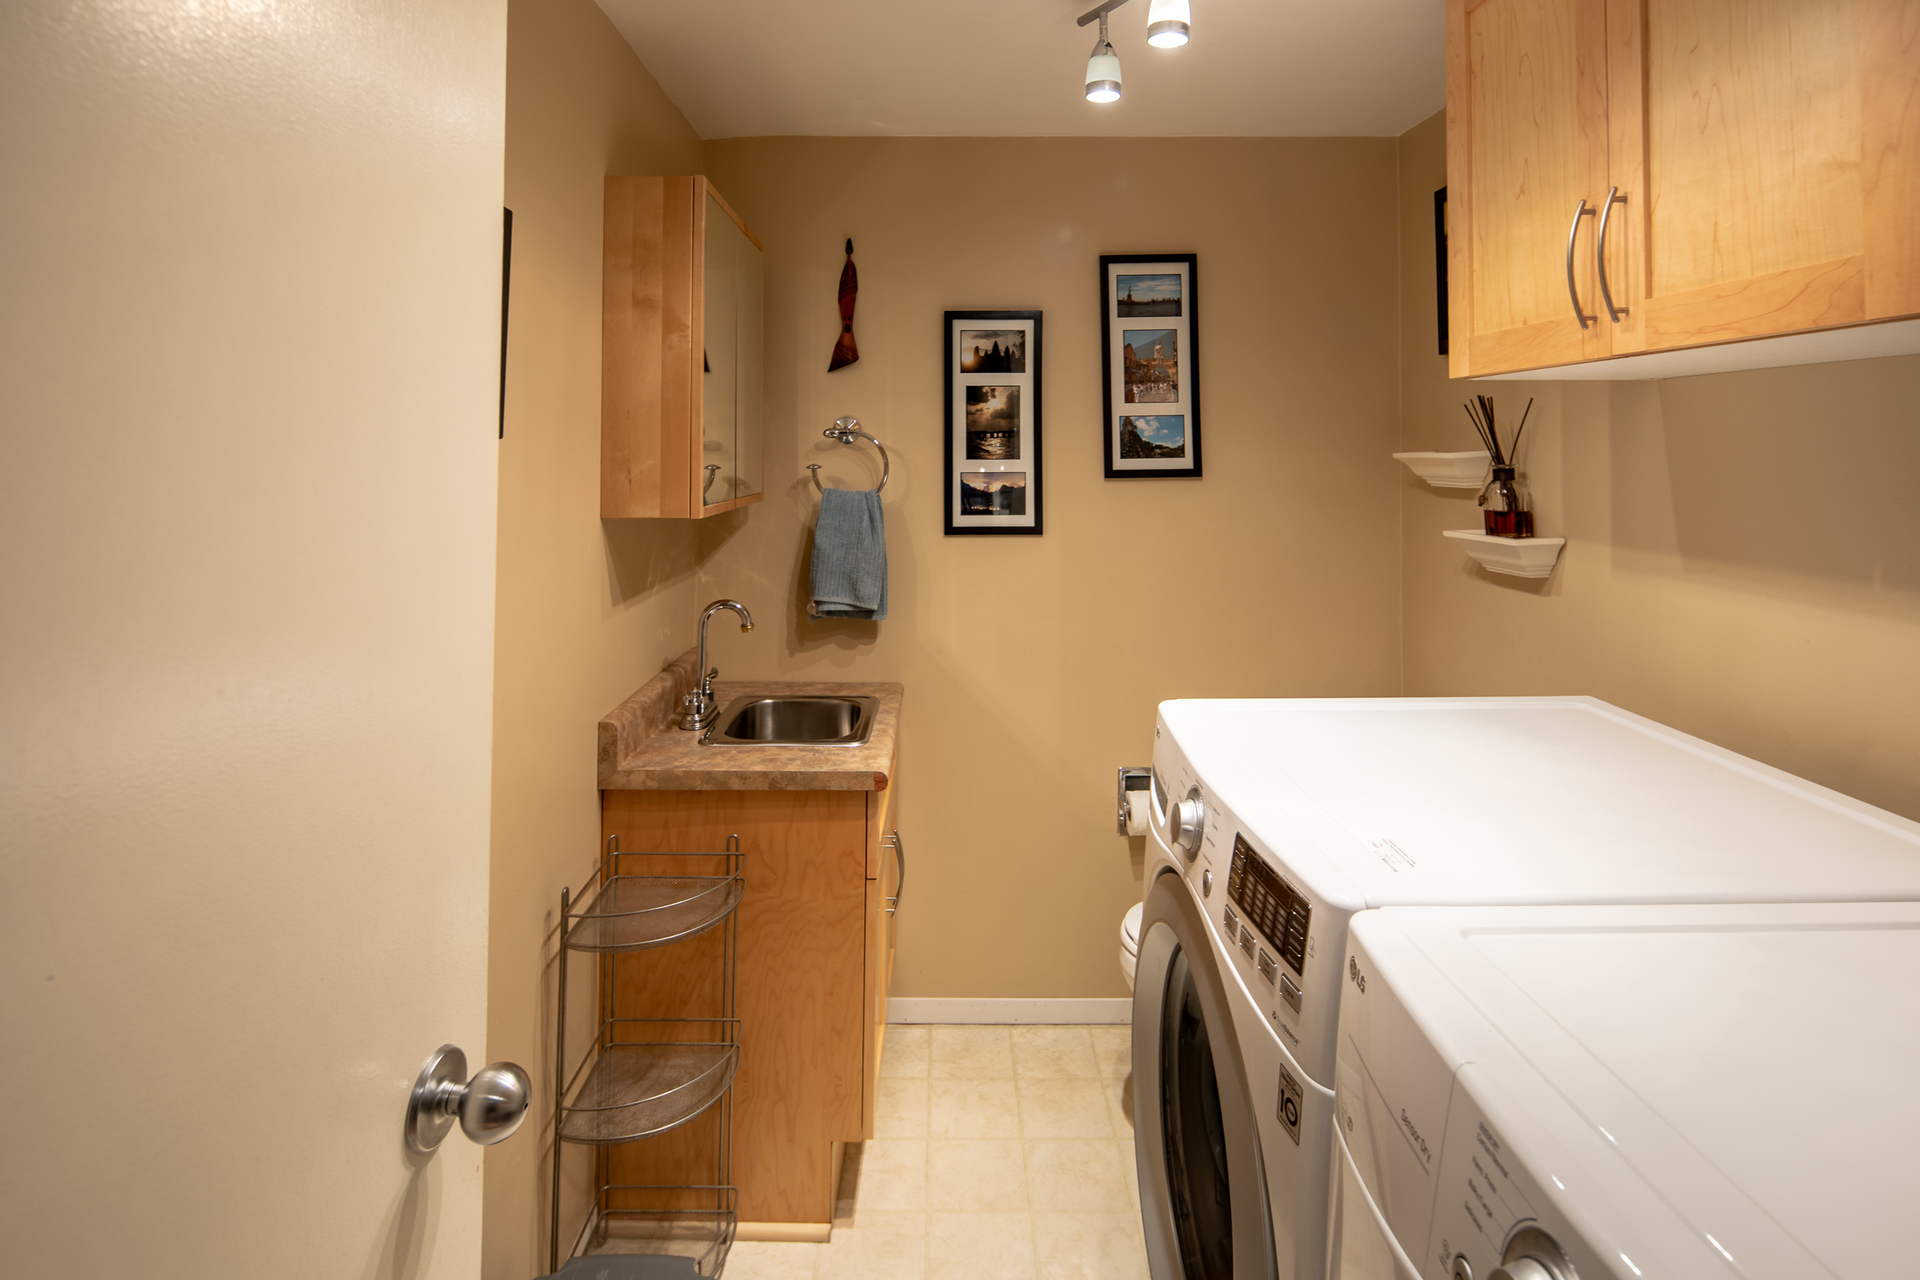 Laundry Room at 1545 North Dairy Road, Oaklands, Victoria Bc Bc,